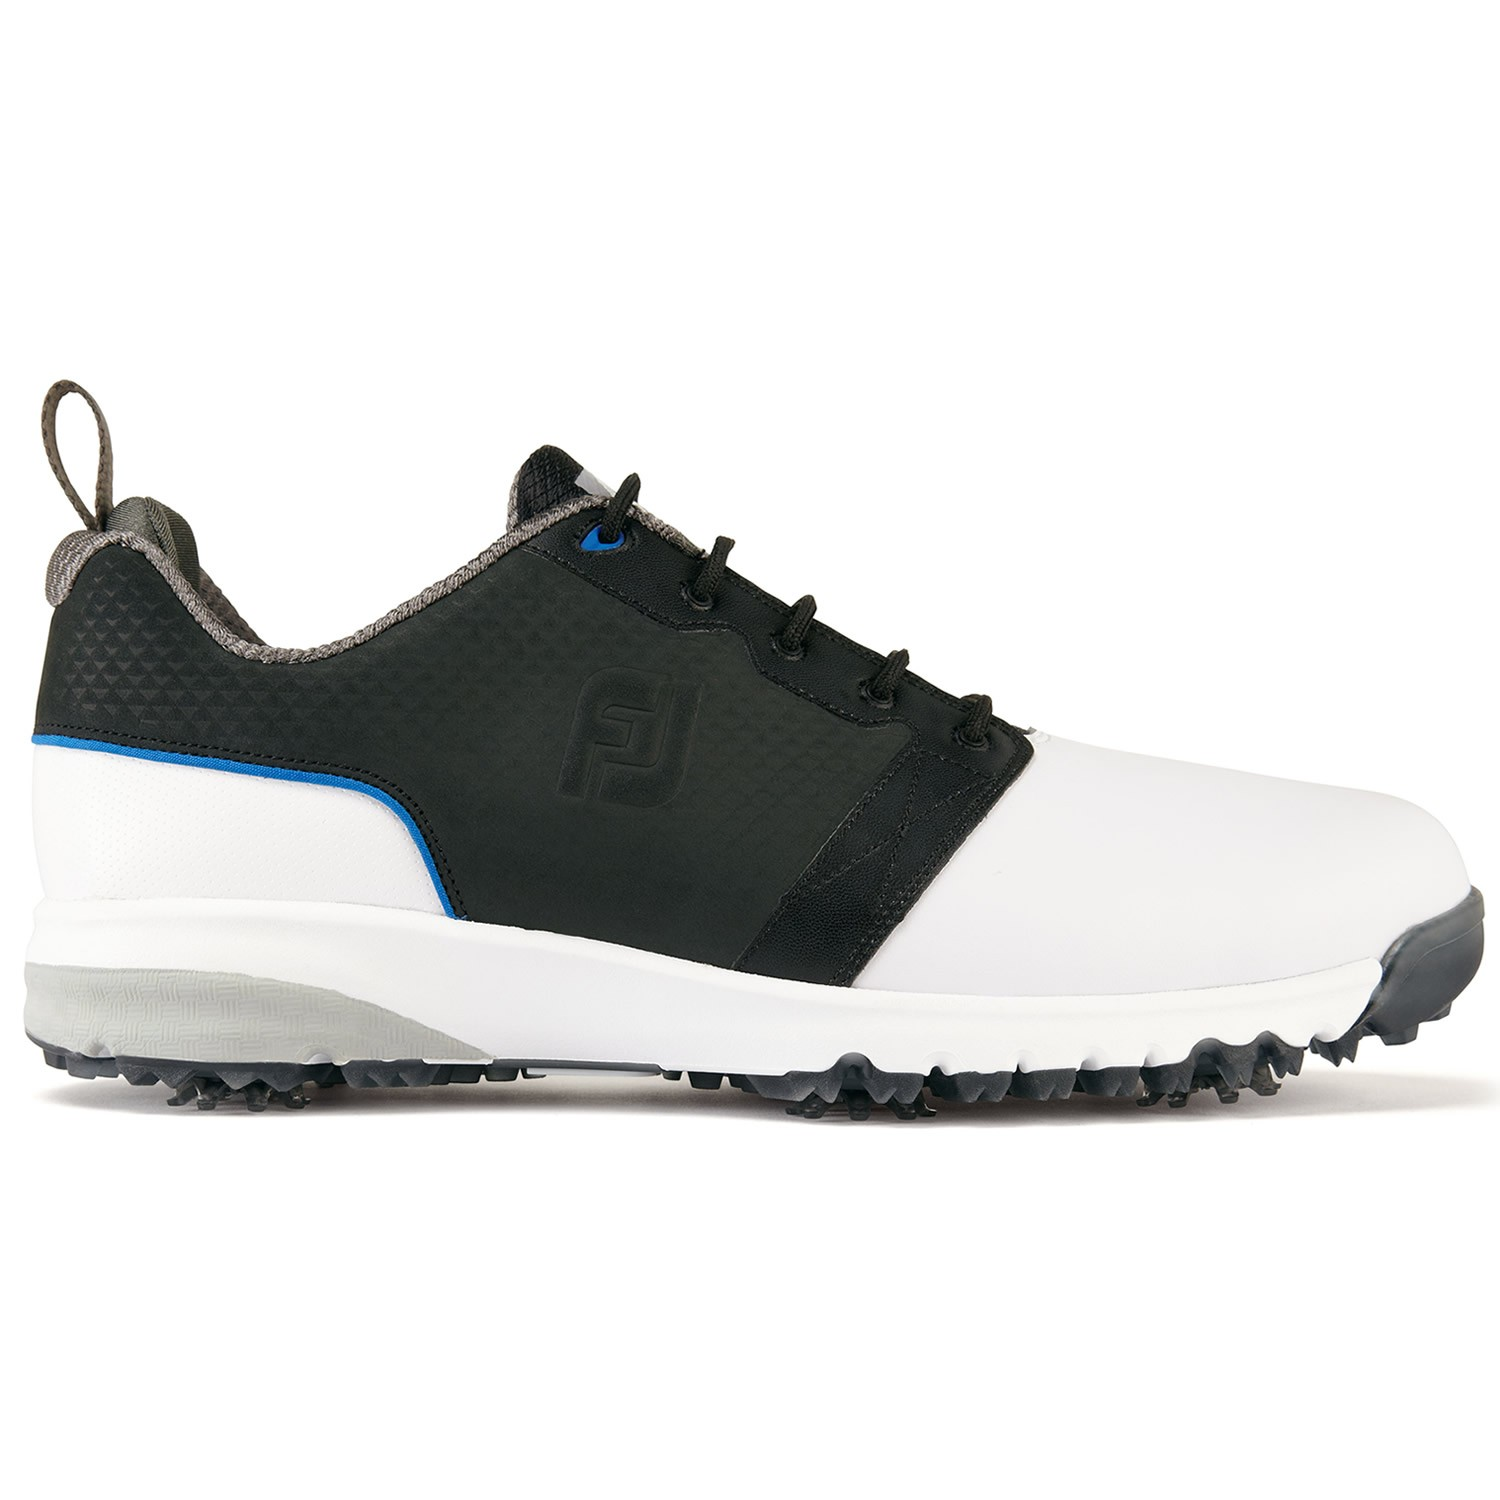 Zapatos golf Footjoy Contour Fit 54153